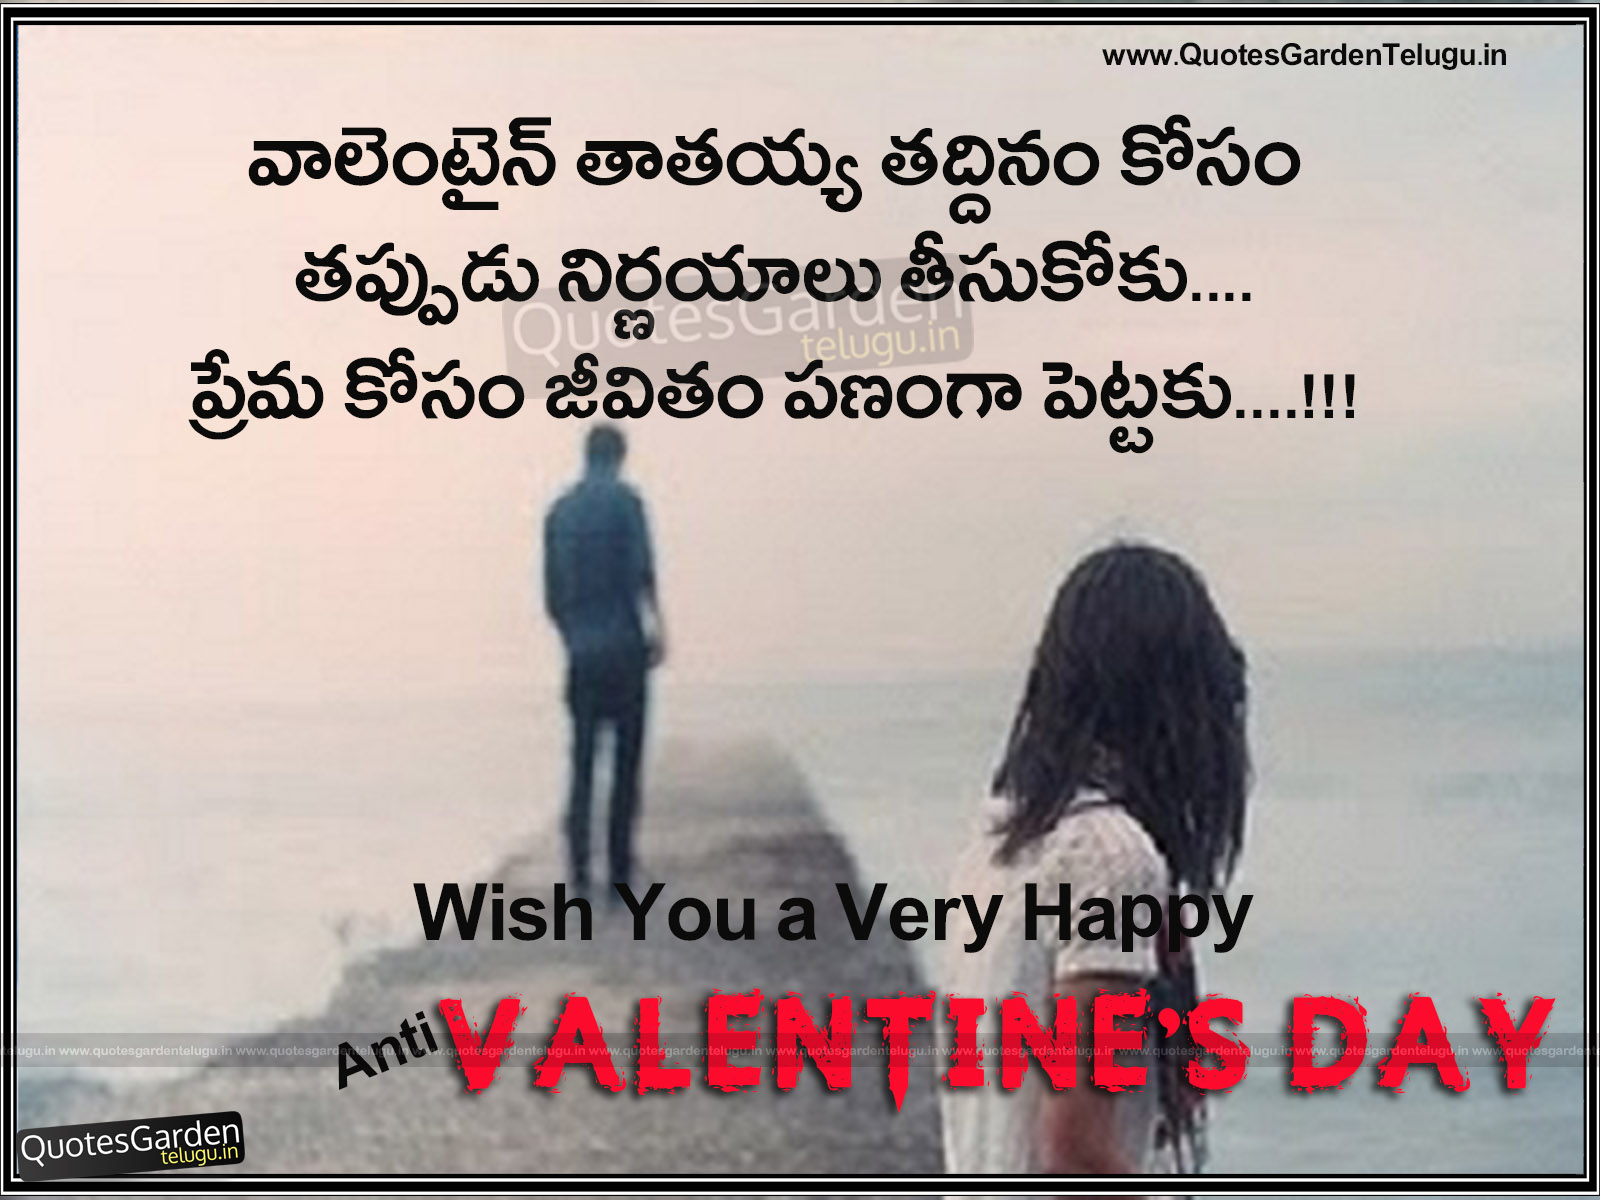 valentines day quotes for girlfriend in telugu - Nice telugu antivalentinesday greetings